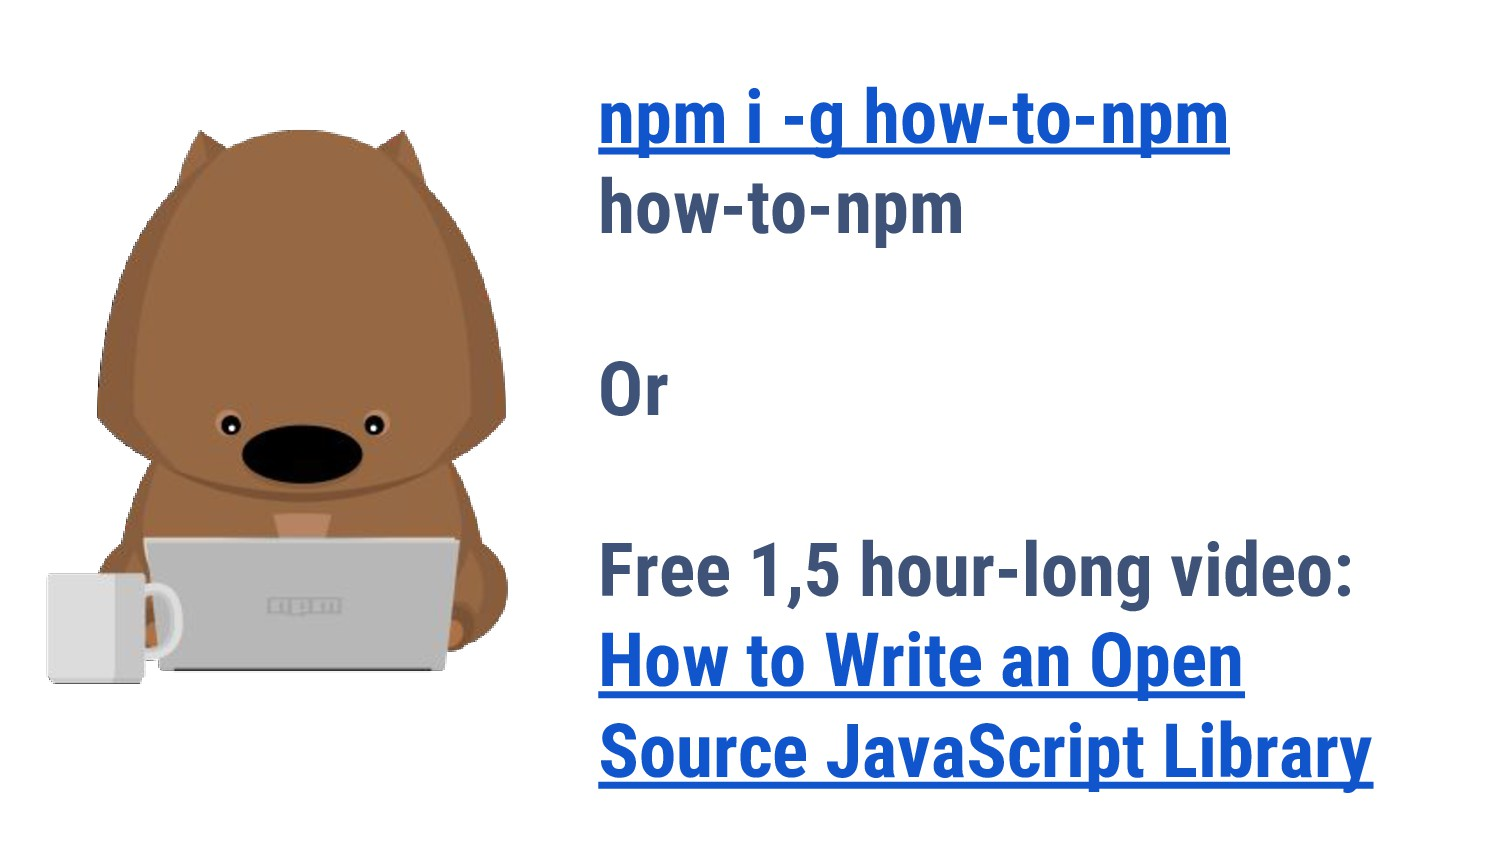 npm i -g how-to-npm how-to-npm Or Free 1,5 hour...